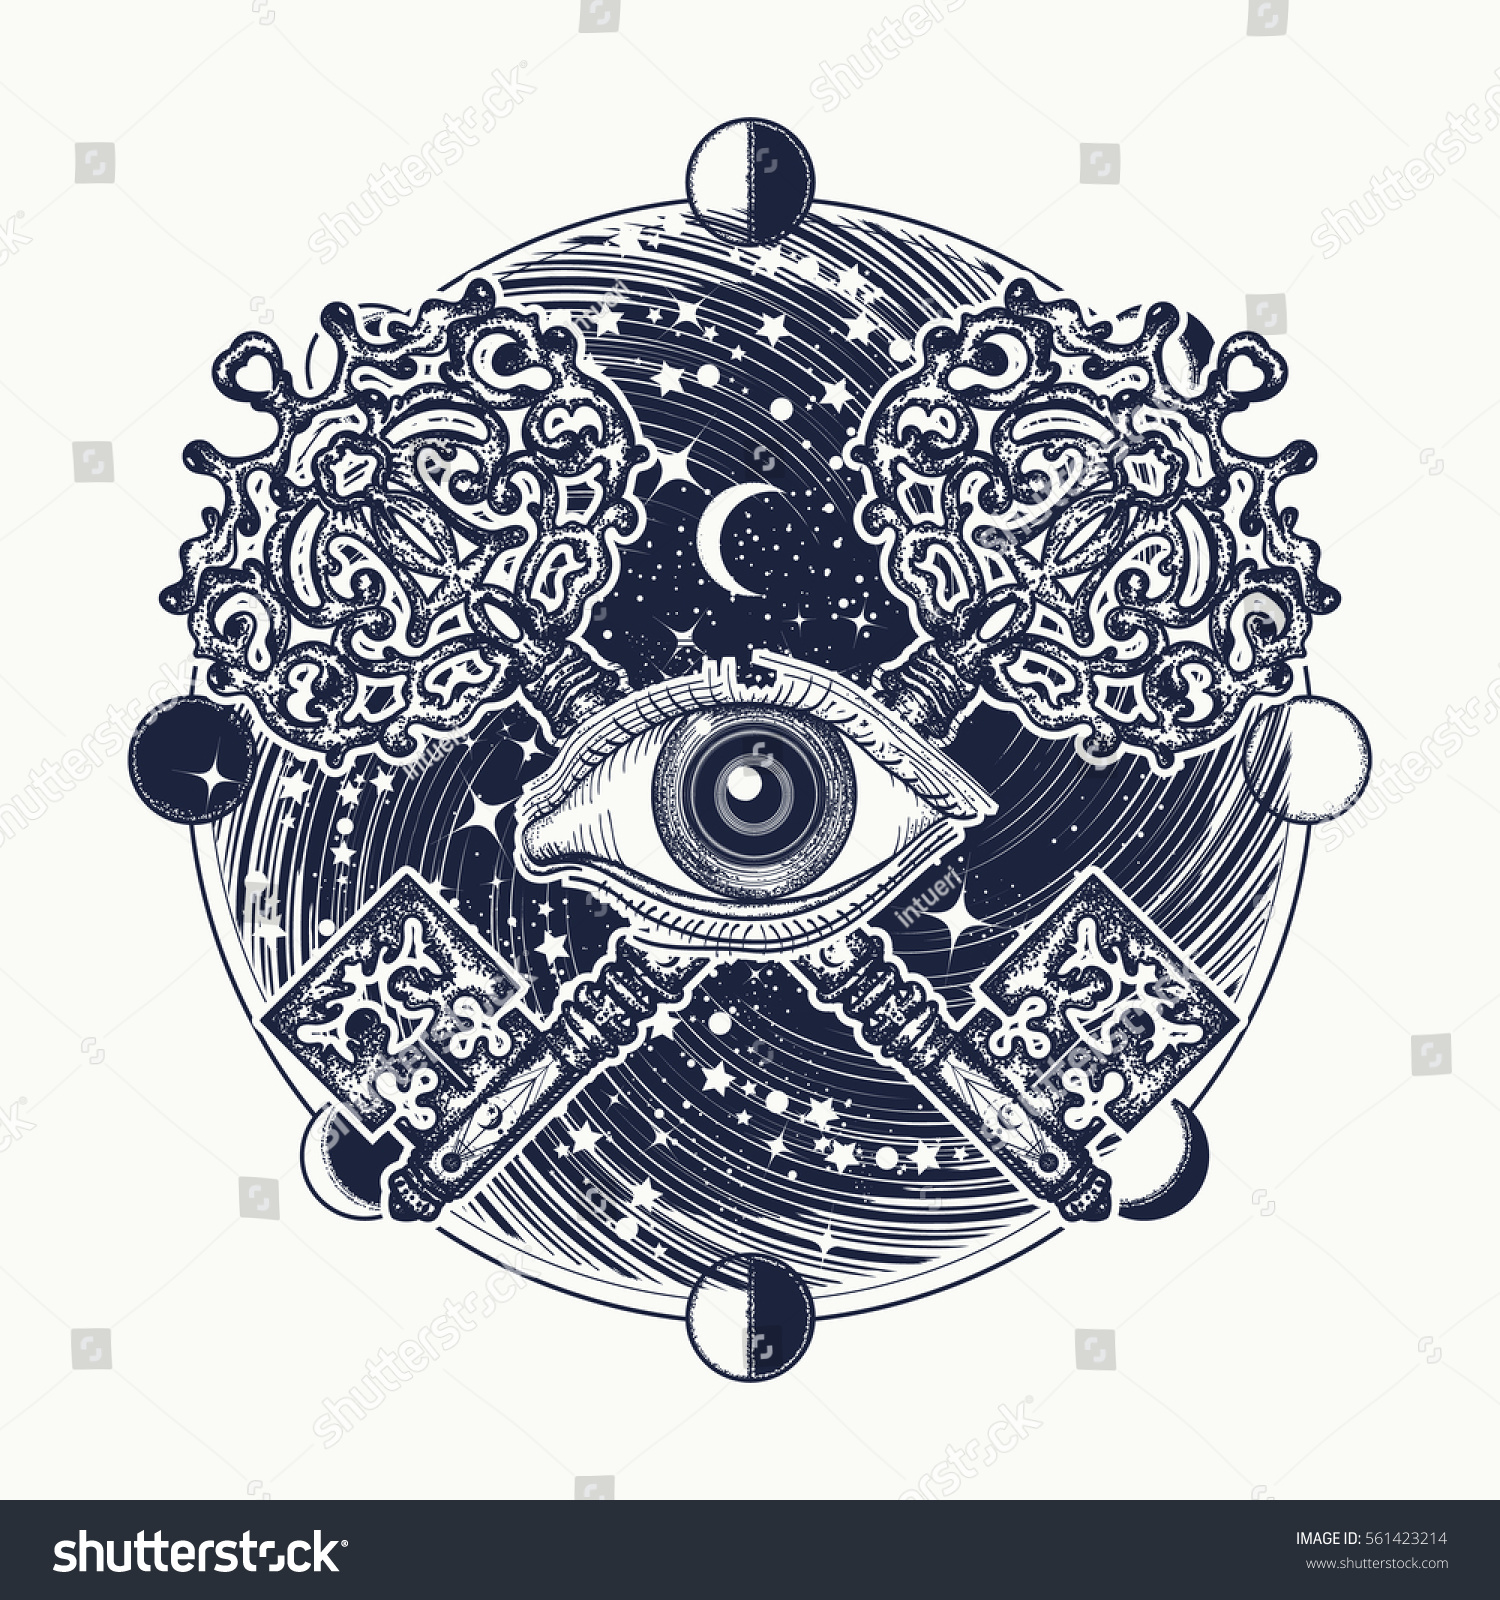 All Seeing Eye Tattoo Occult Art Stock Vector (Royalty Free) 561423214